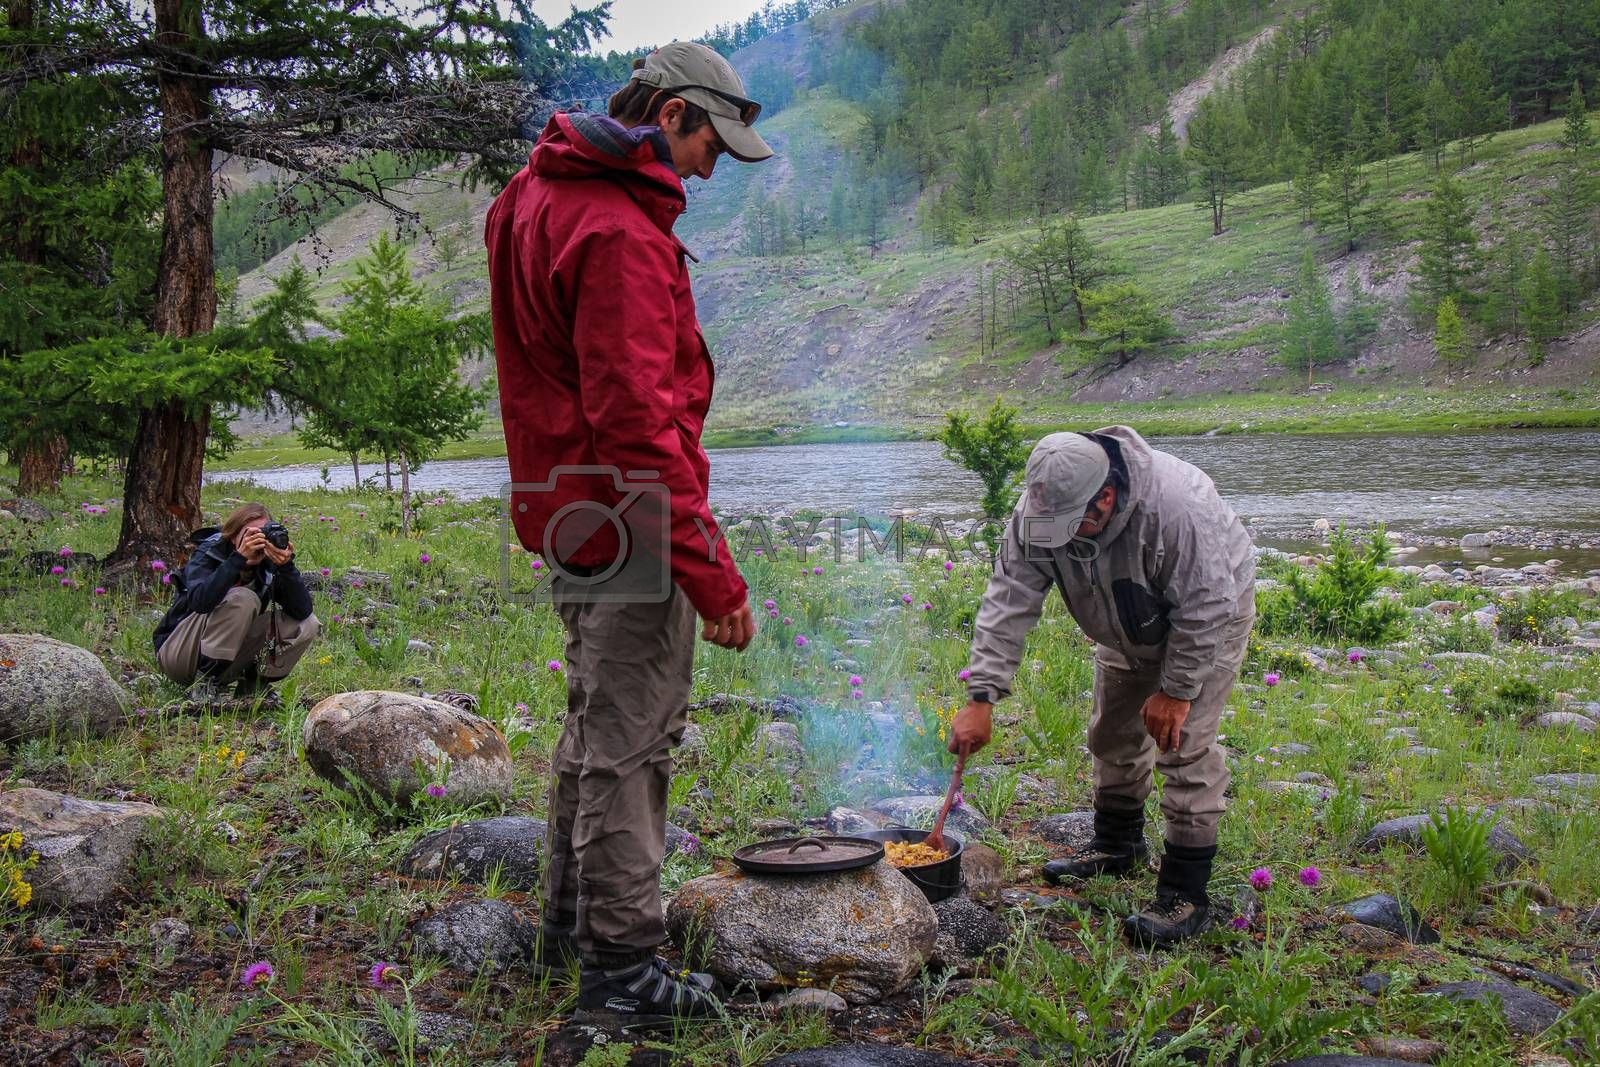 Fishing guides cooking lunch beside the river during a fishing trip in Mongolia, Moron, Mongolia - July 14th 2014